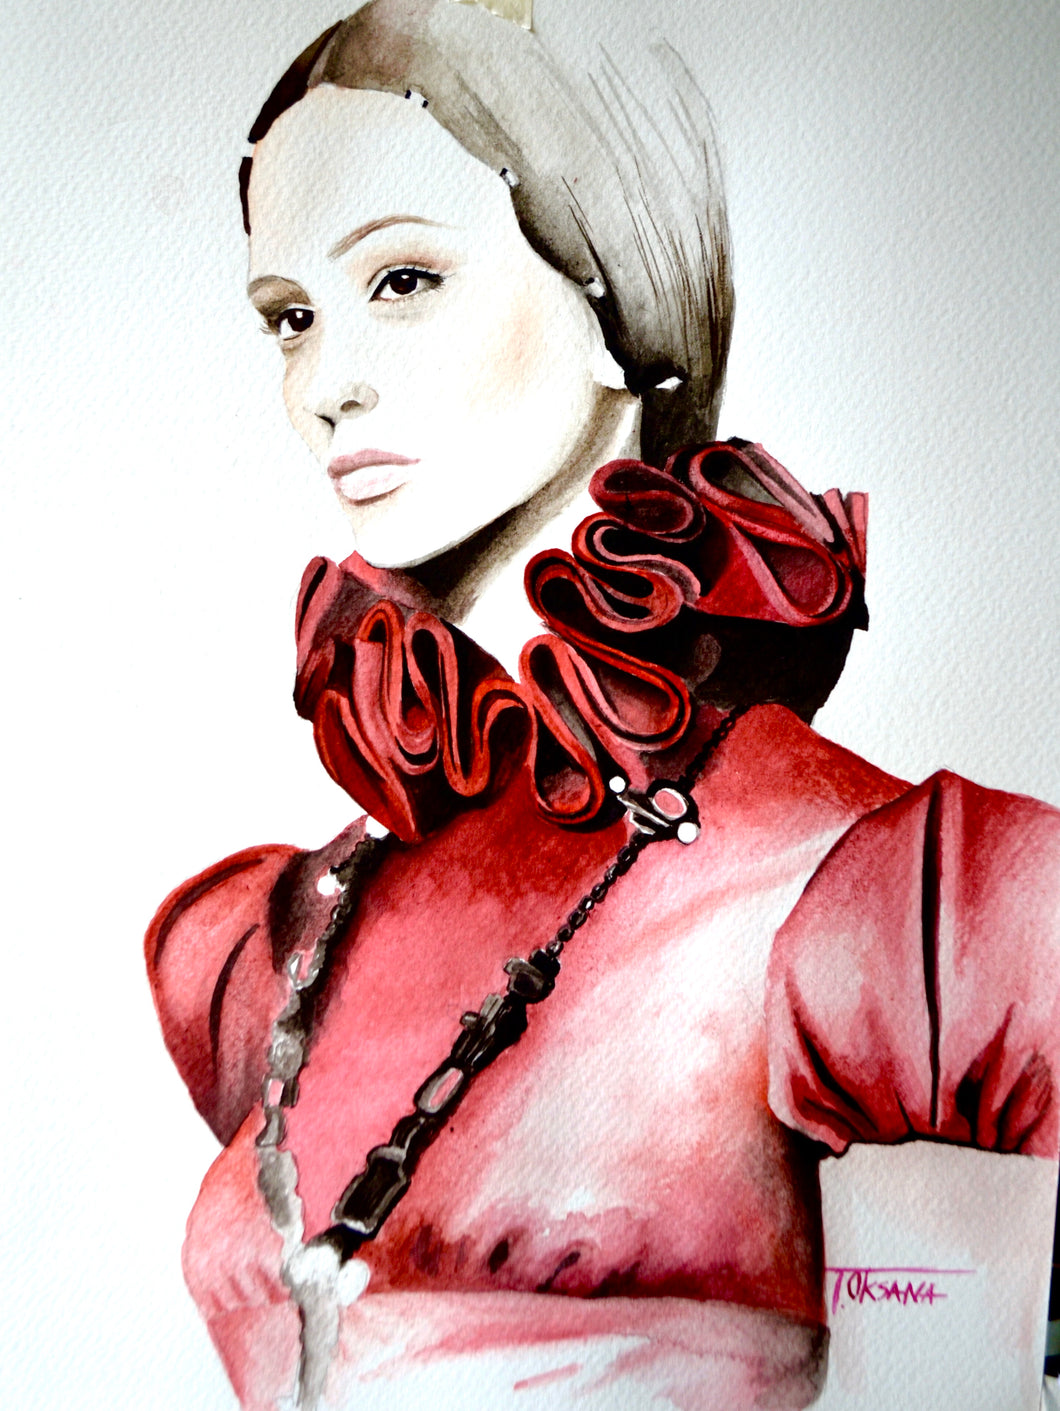 Red Valentino Fashion Illustration Watercolor Art - OKSI Fine Art